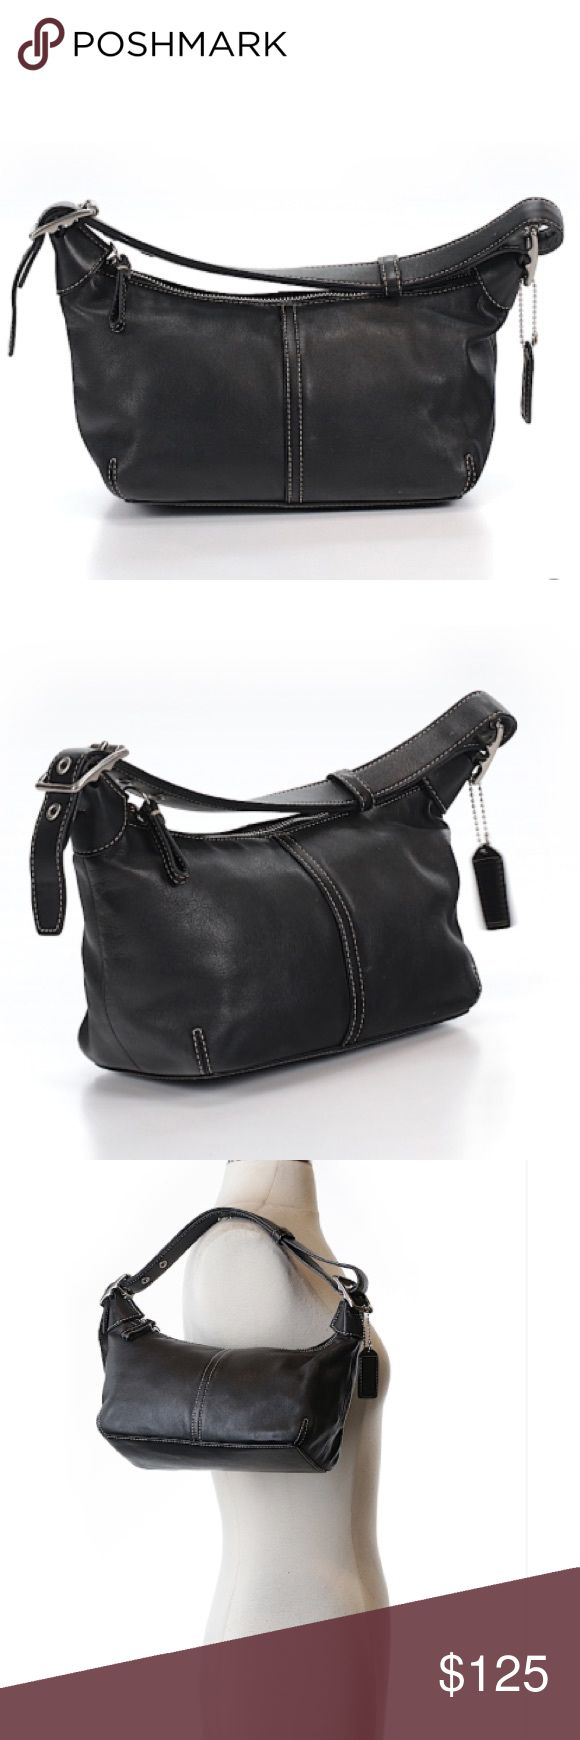 Coach hobo shoulder bag Very good condition, minor signs of use with minor scratches to exterior and minor interior wear. No major flaws/stains/smells. Coach Bags Shoulder Bags